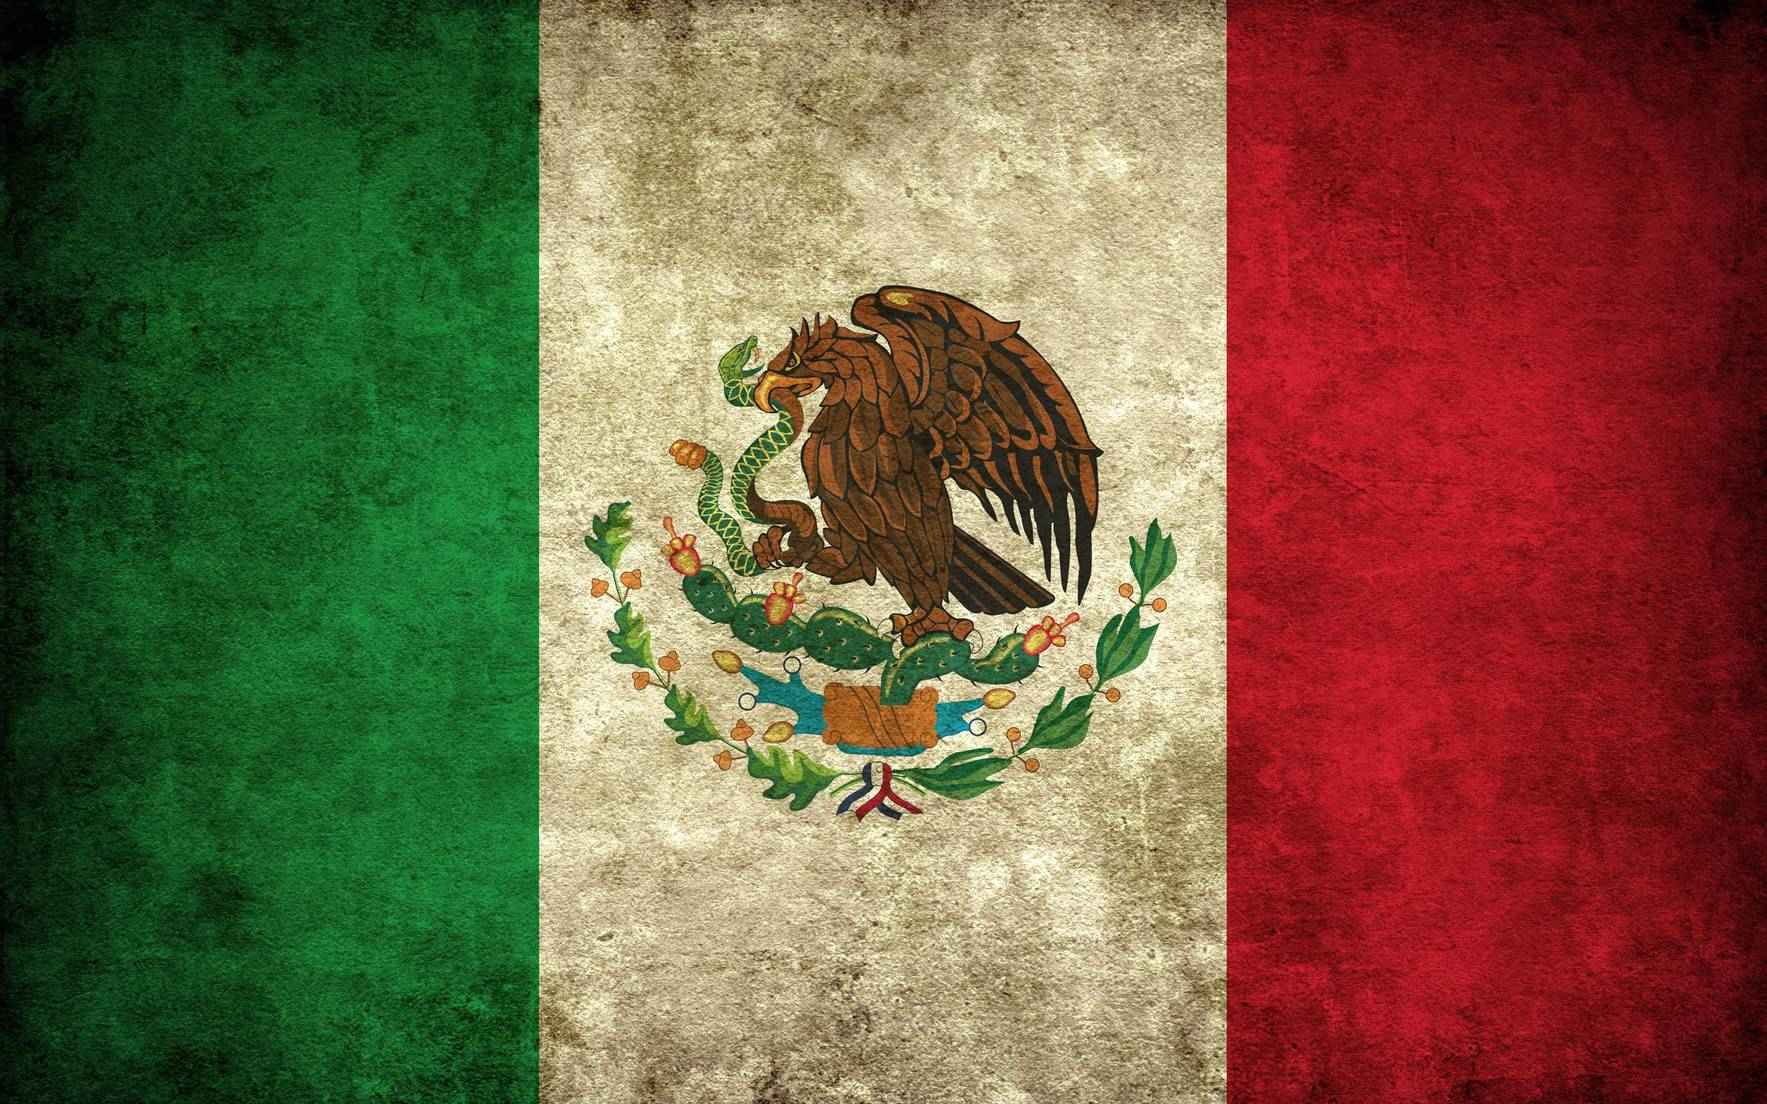 Mexico Earthquake Relief Fund image